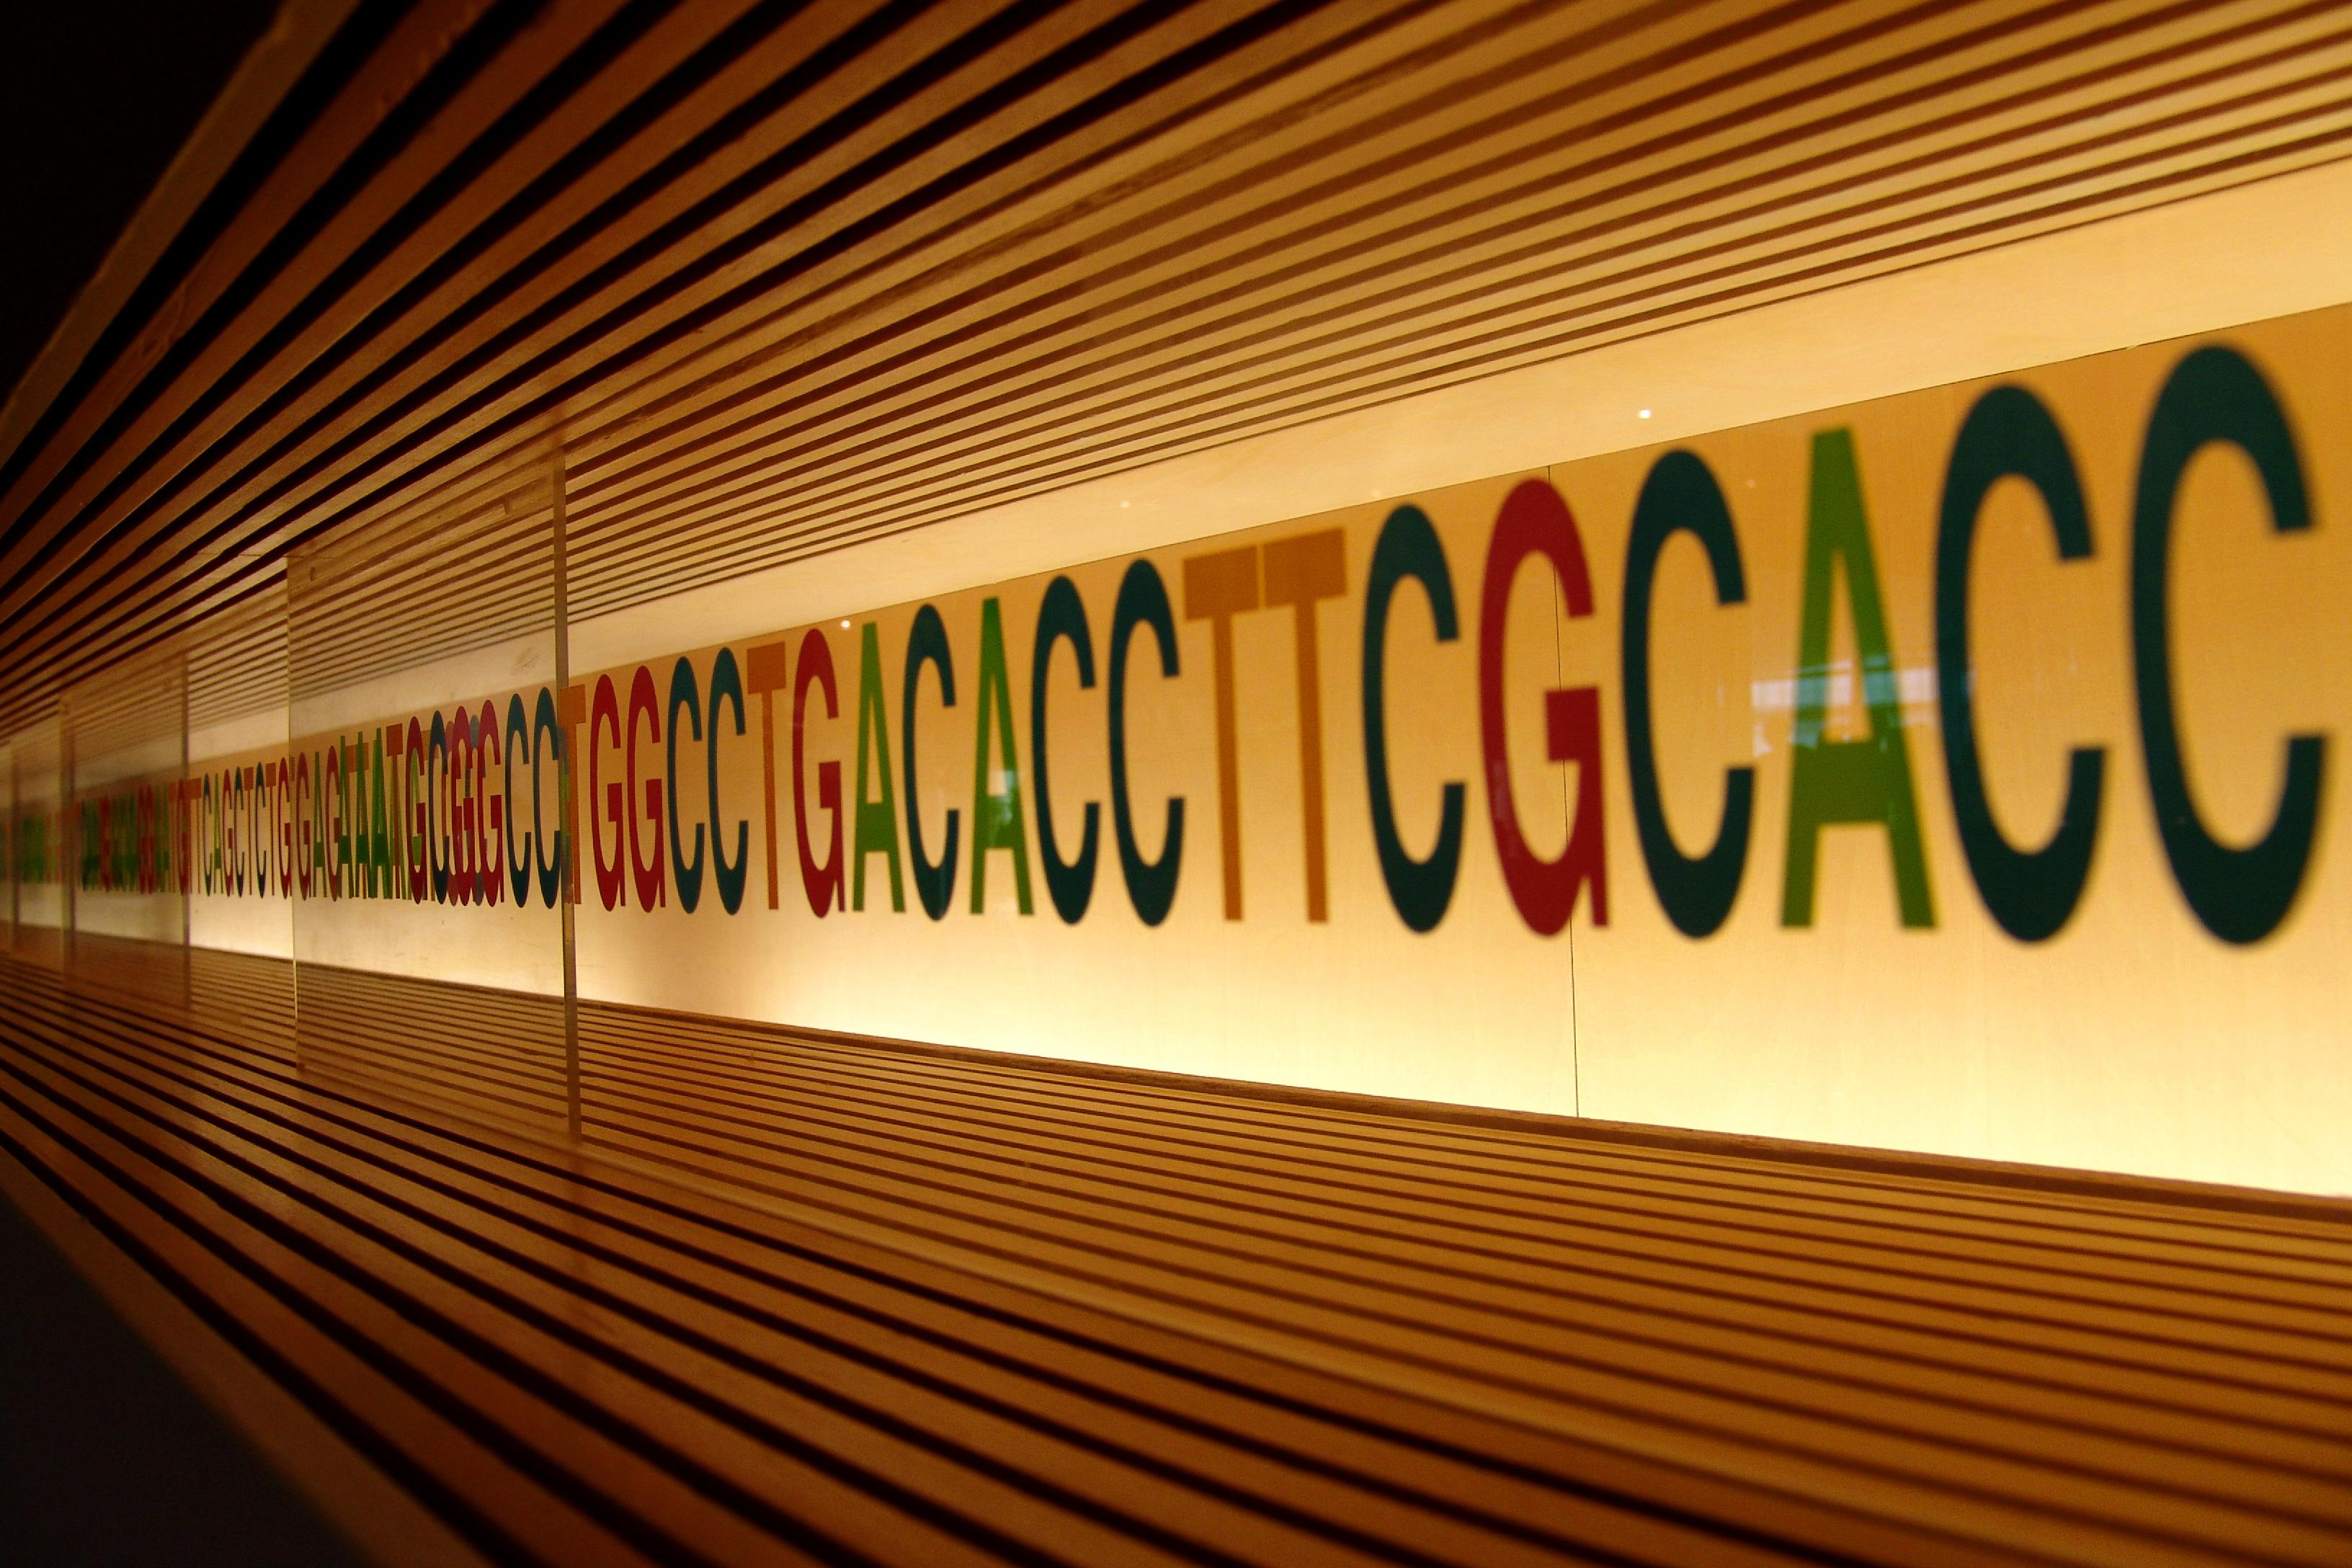 The letters ATCG are lined on a wall, with several different colors against an illuminated background